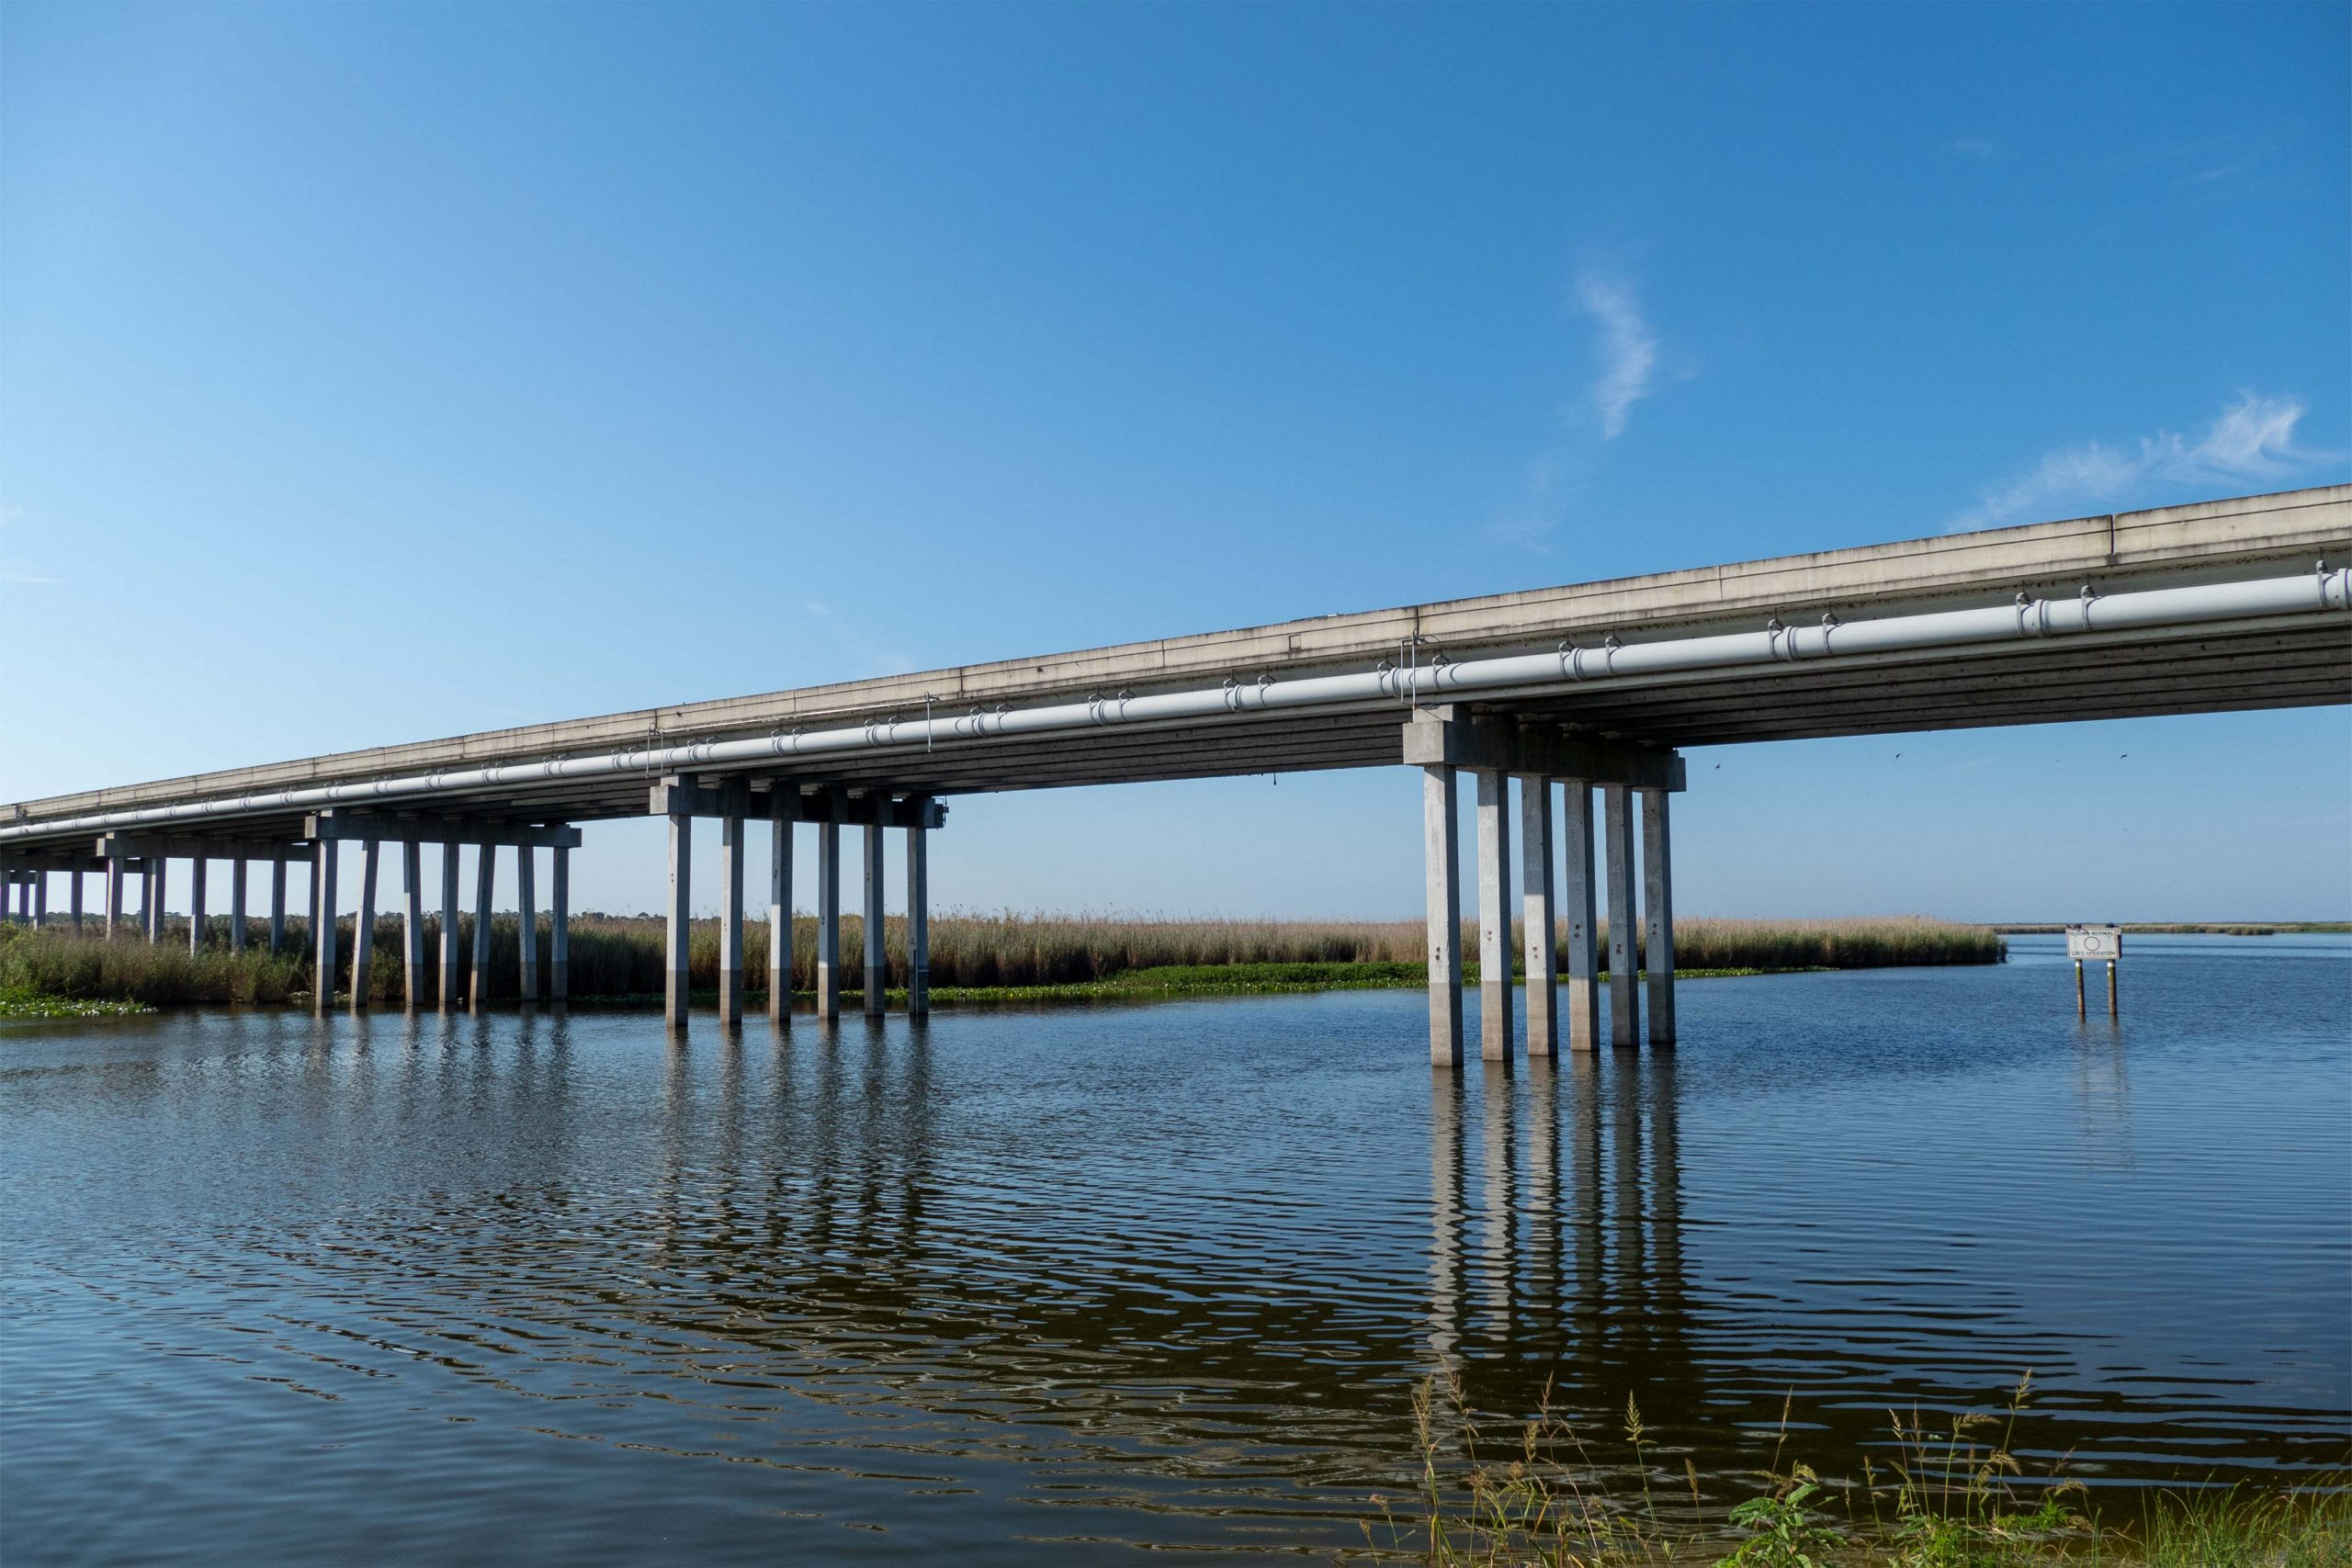 State Road 46 crosses the St. Johns River